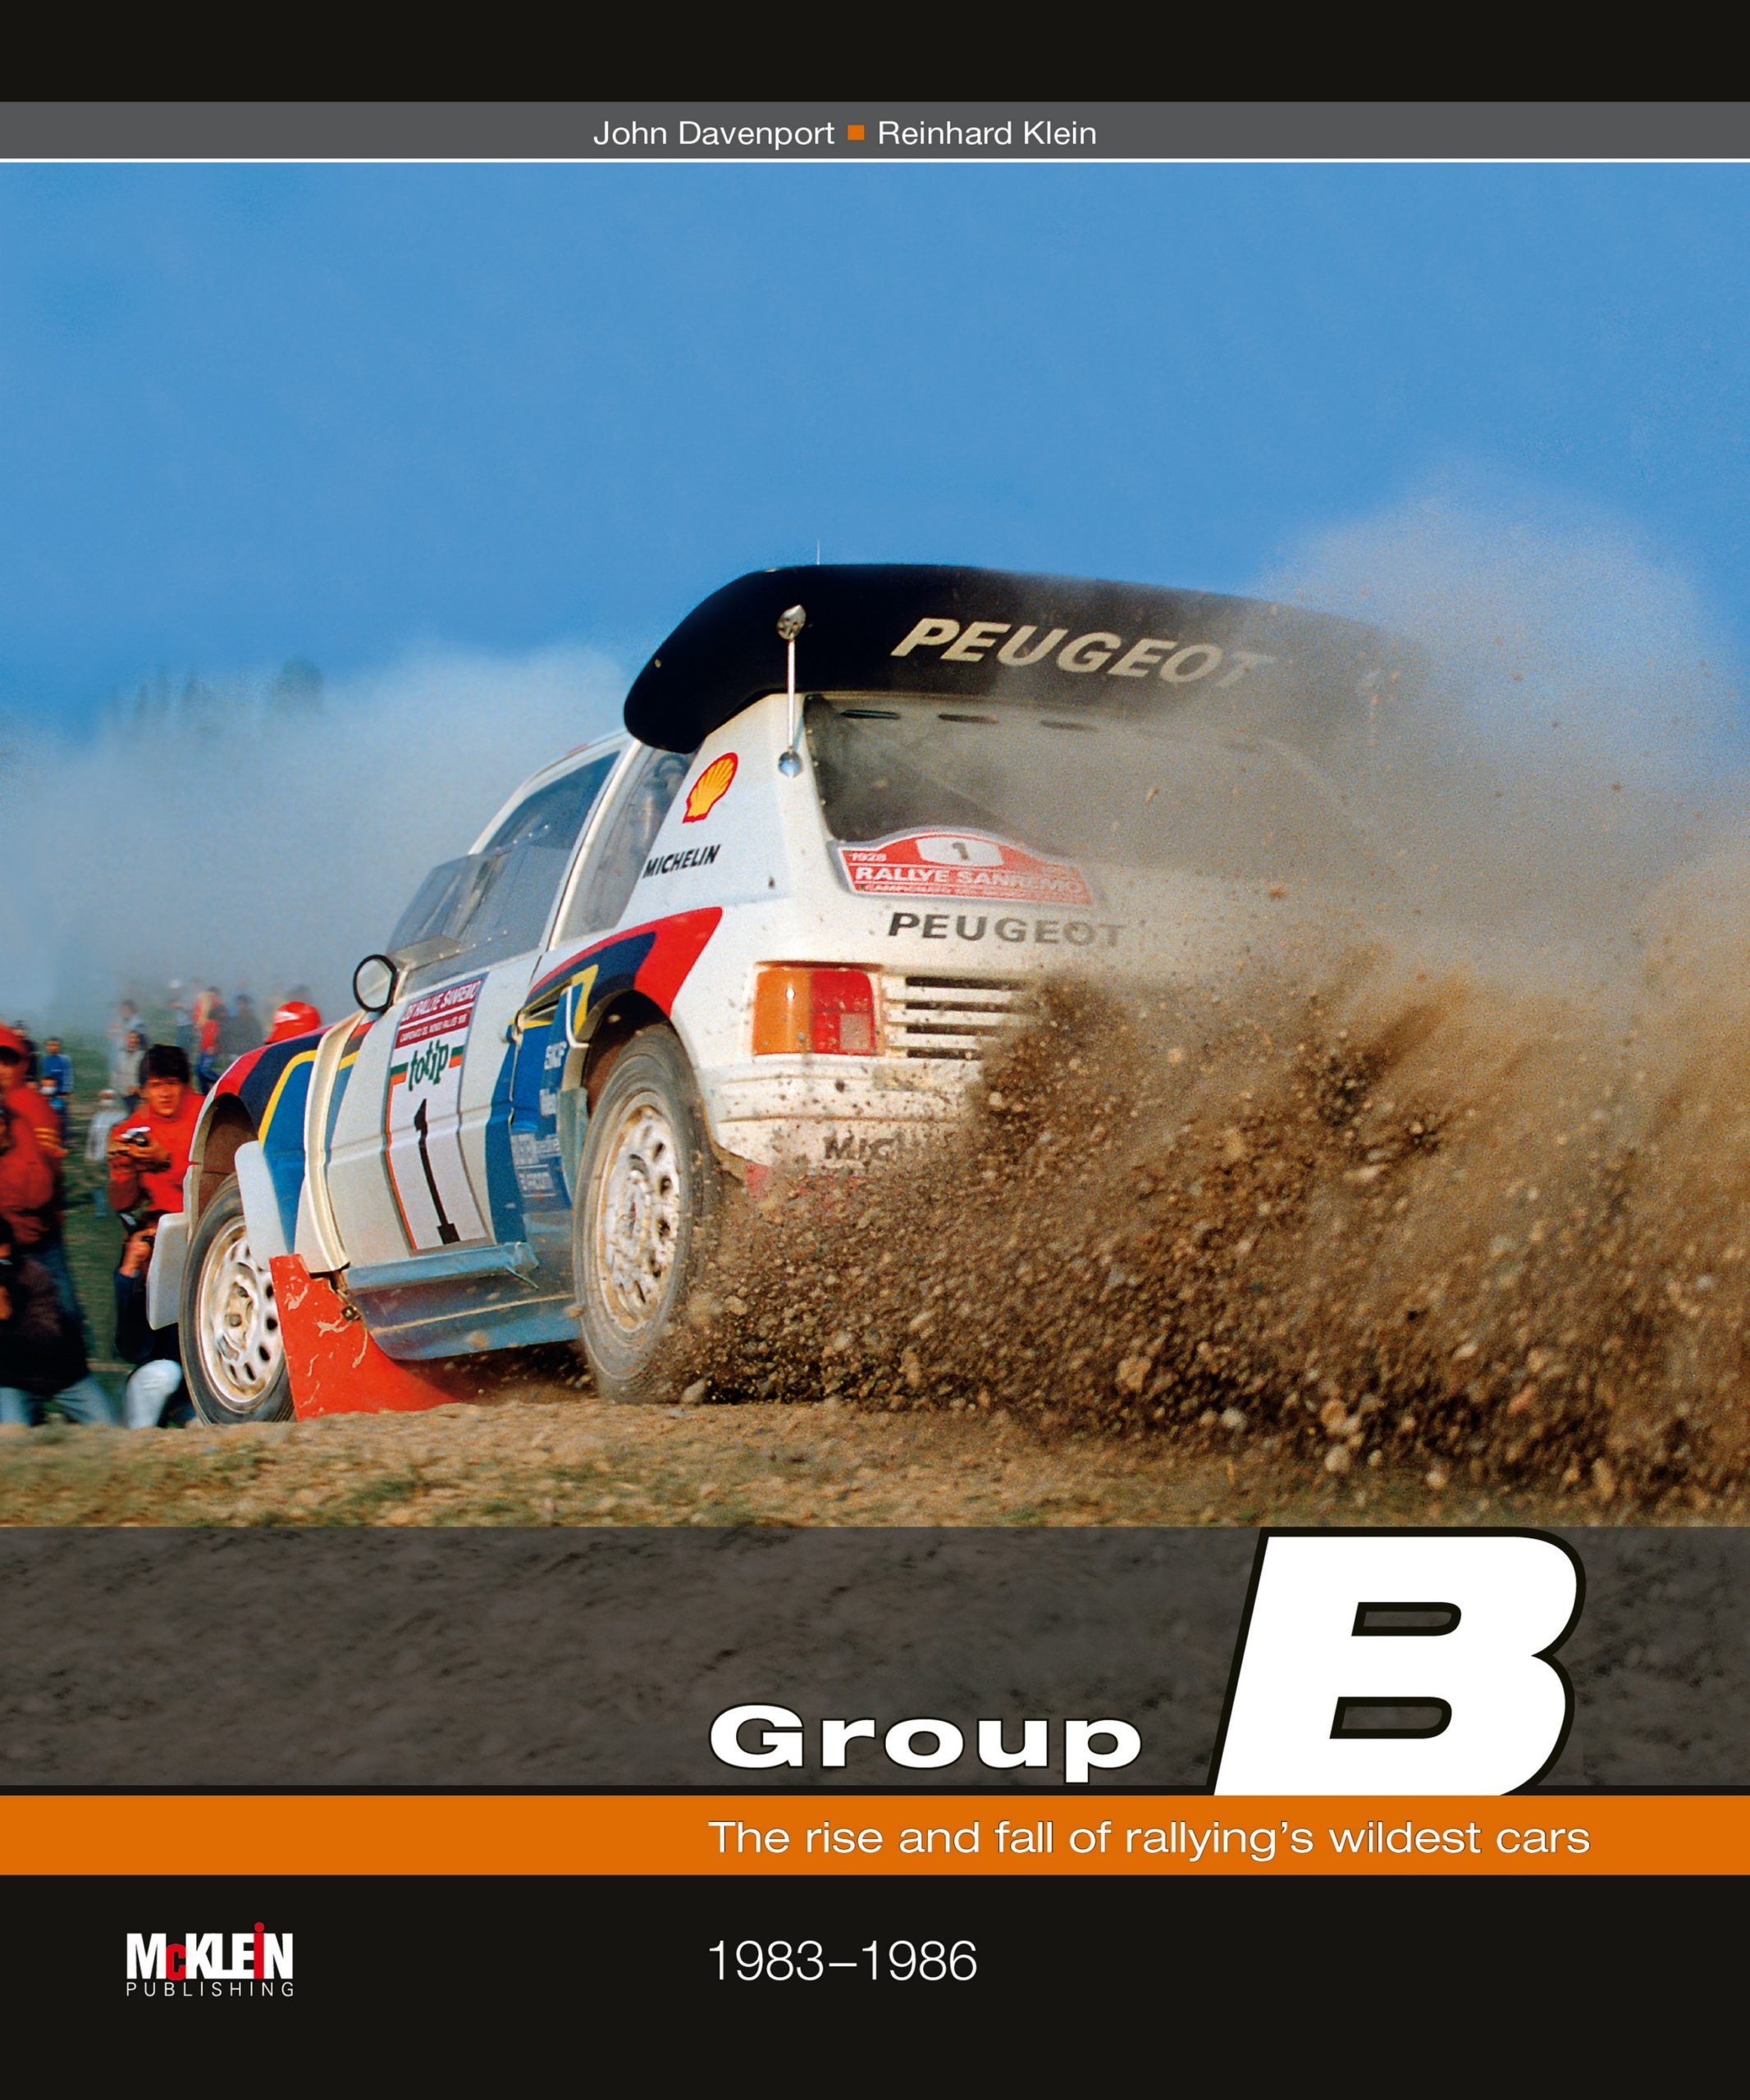 Group B - The rise and fall of rallying's wildest cars //